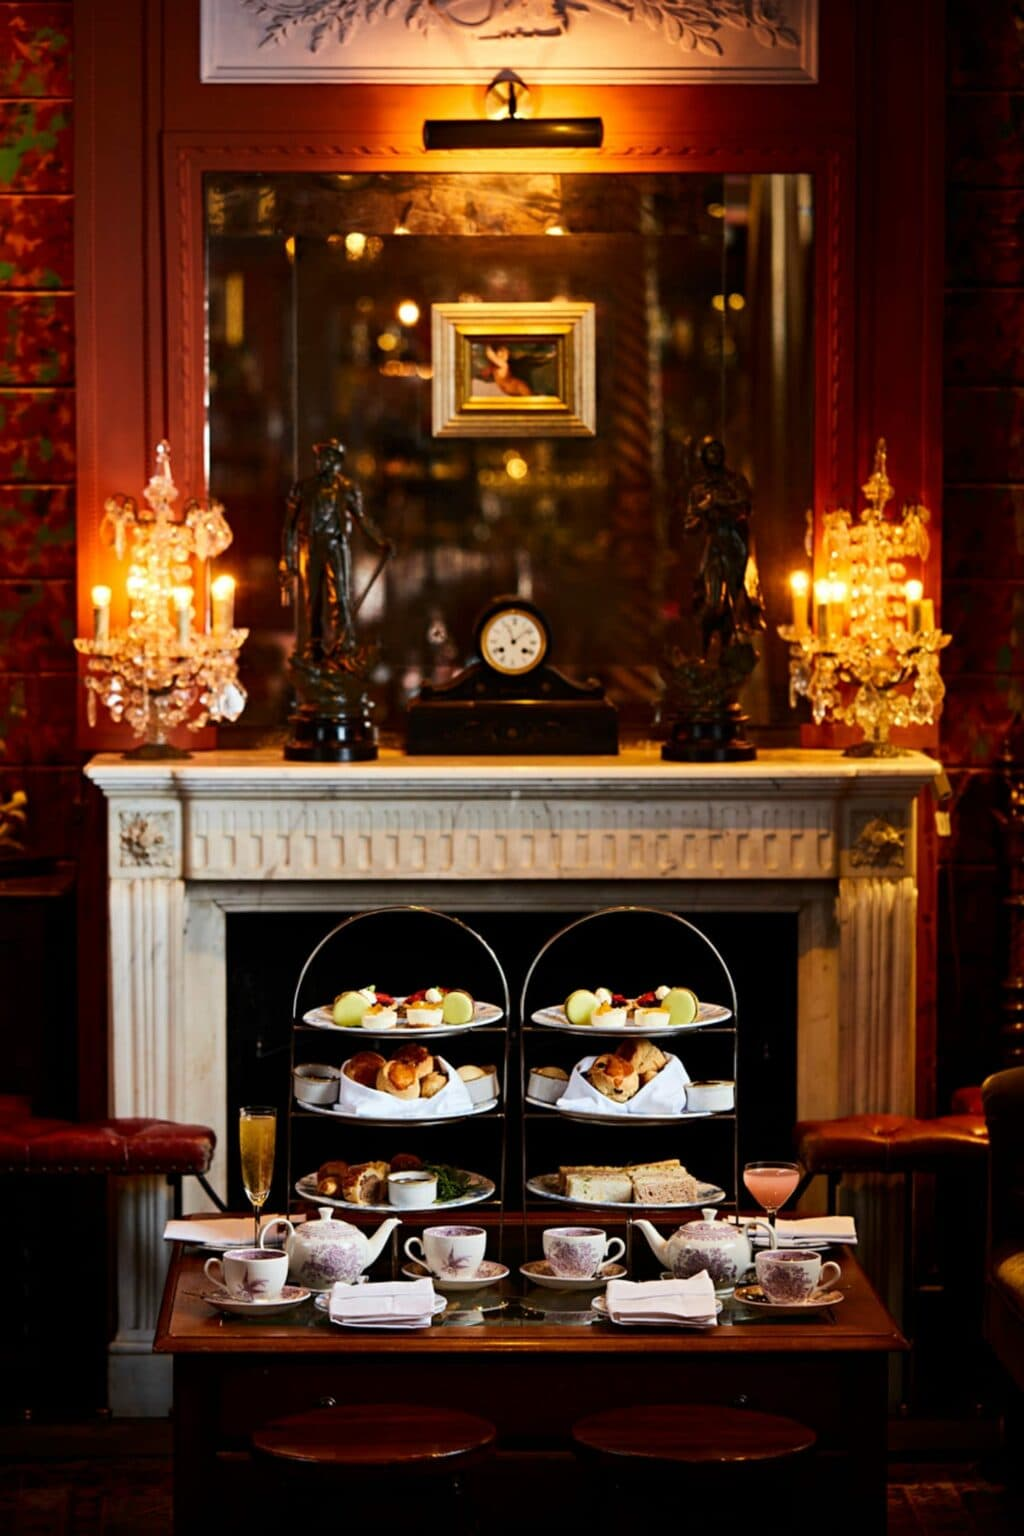 The Zetter Hotel Afternoon tea